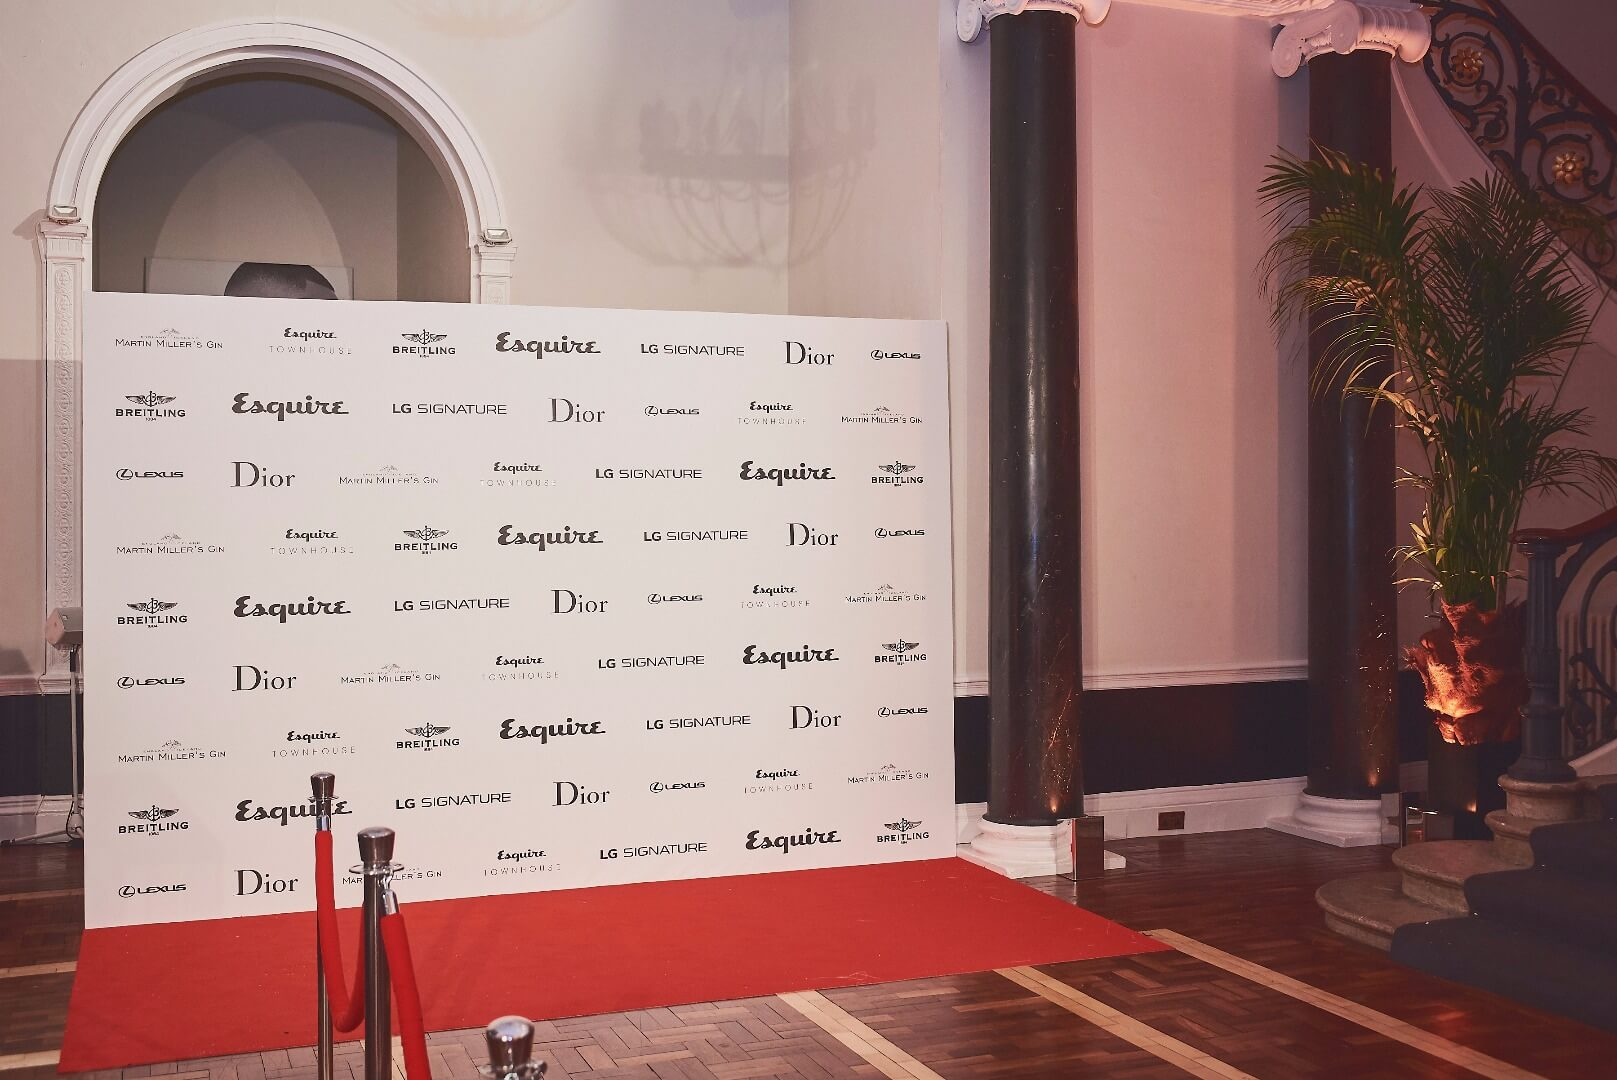 20171011-Hearst-Live-Esquire-_1SS3676.jpg